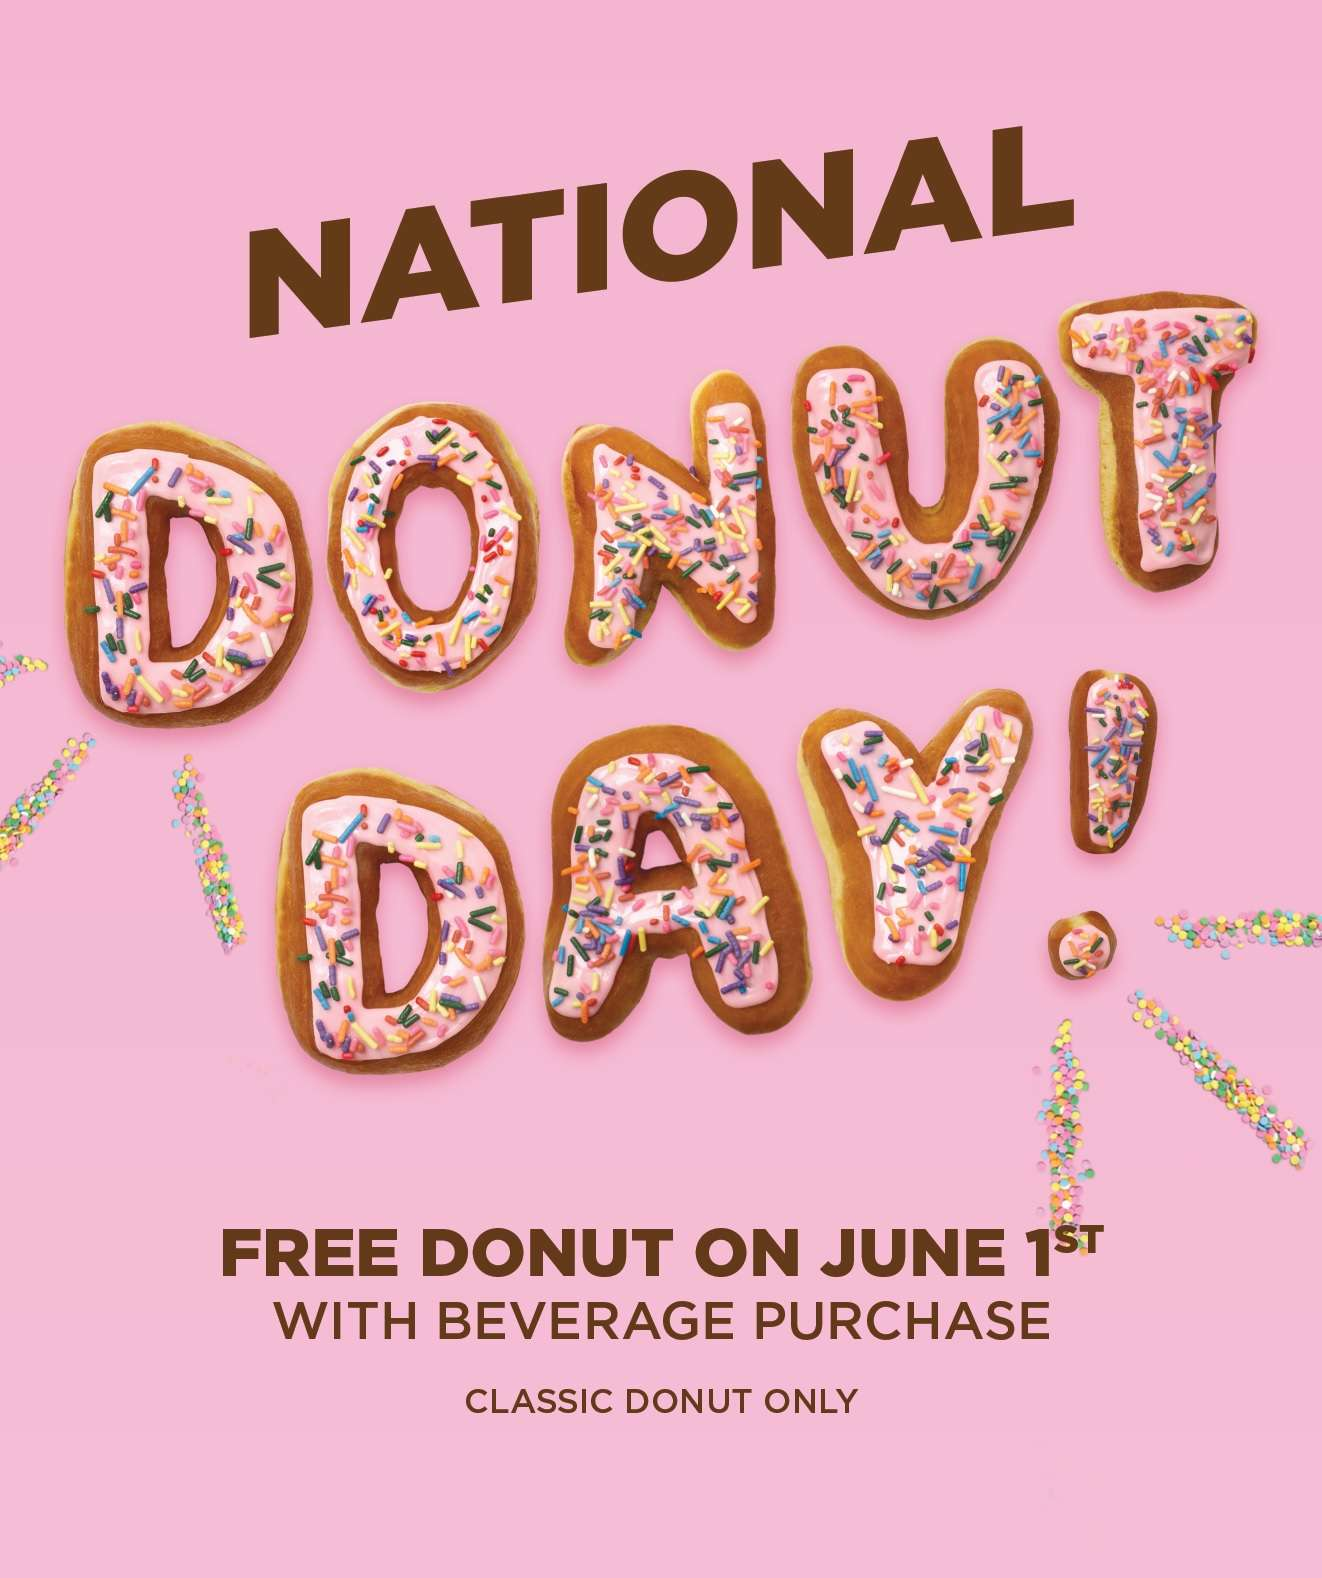 Dunkin Donuts National Donut Day Free Donut